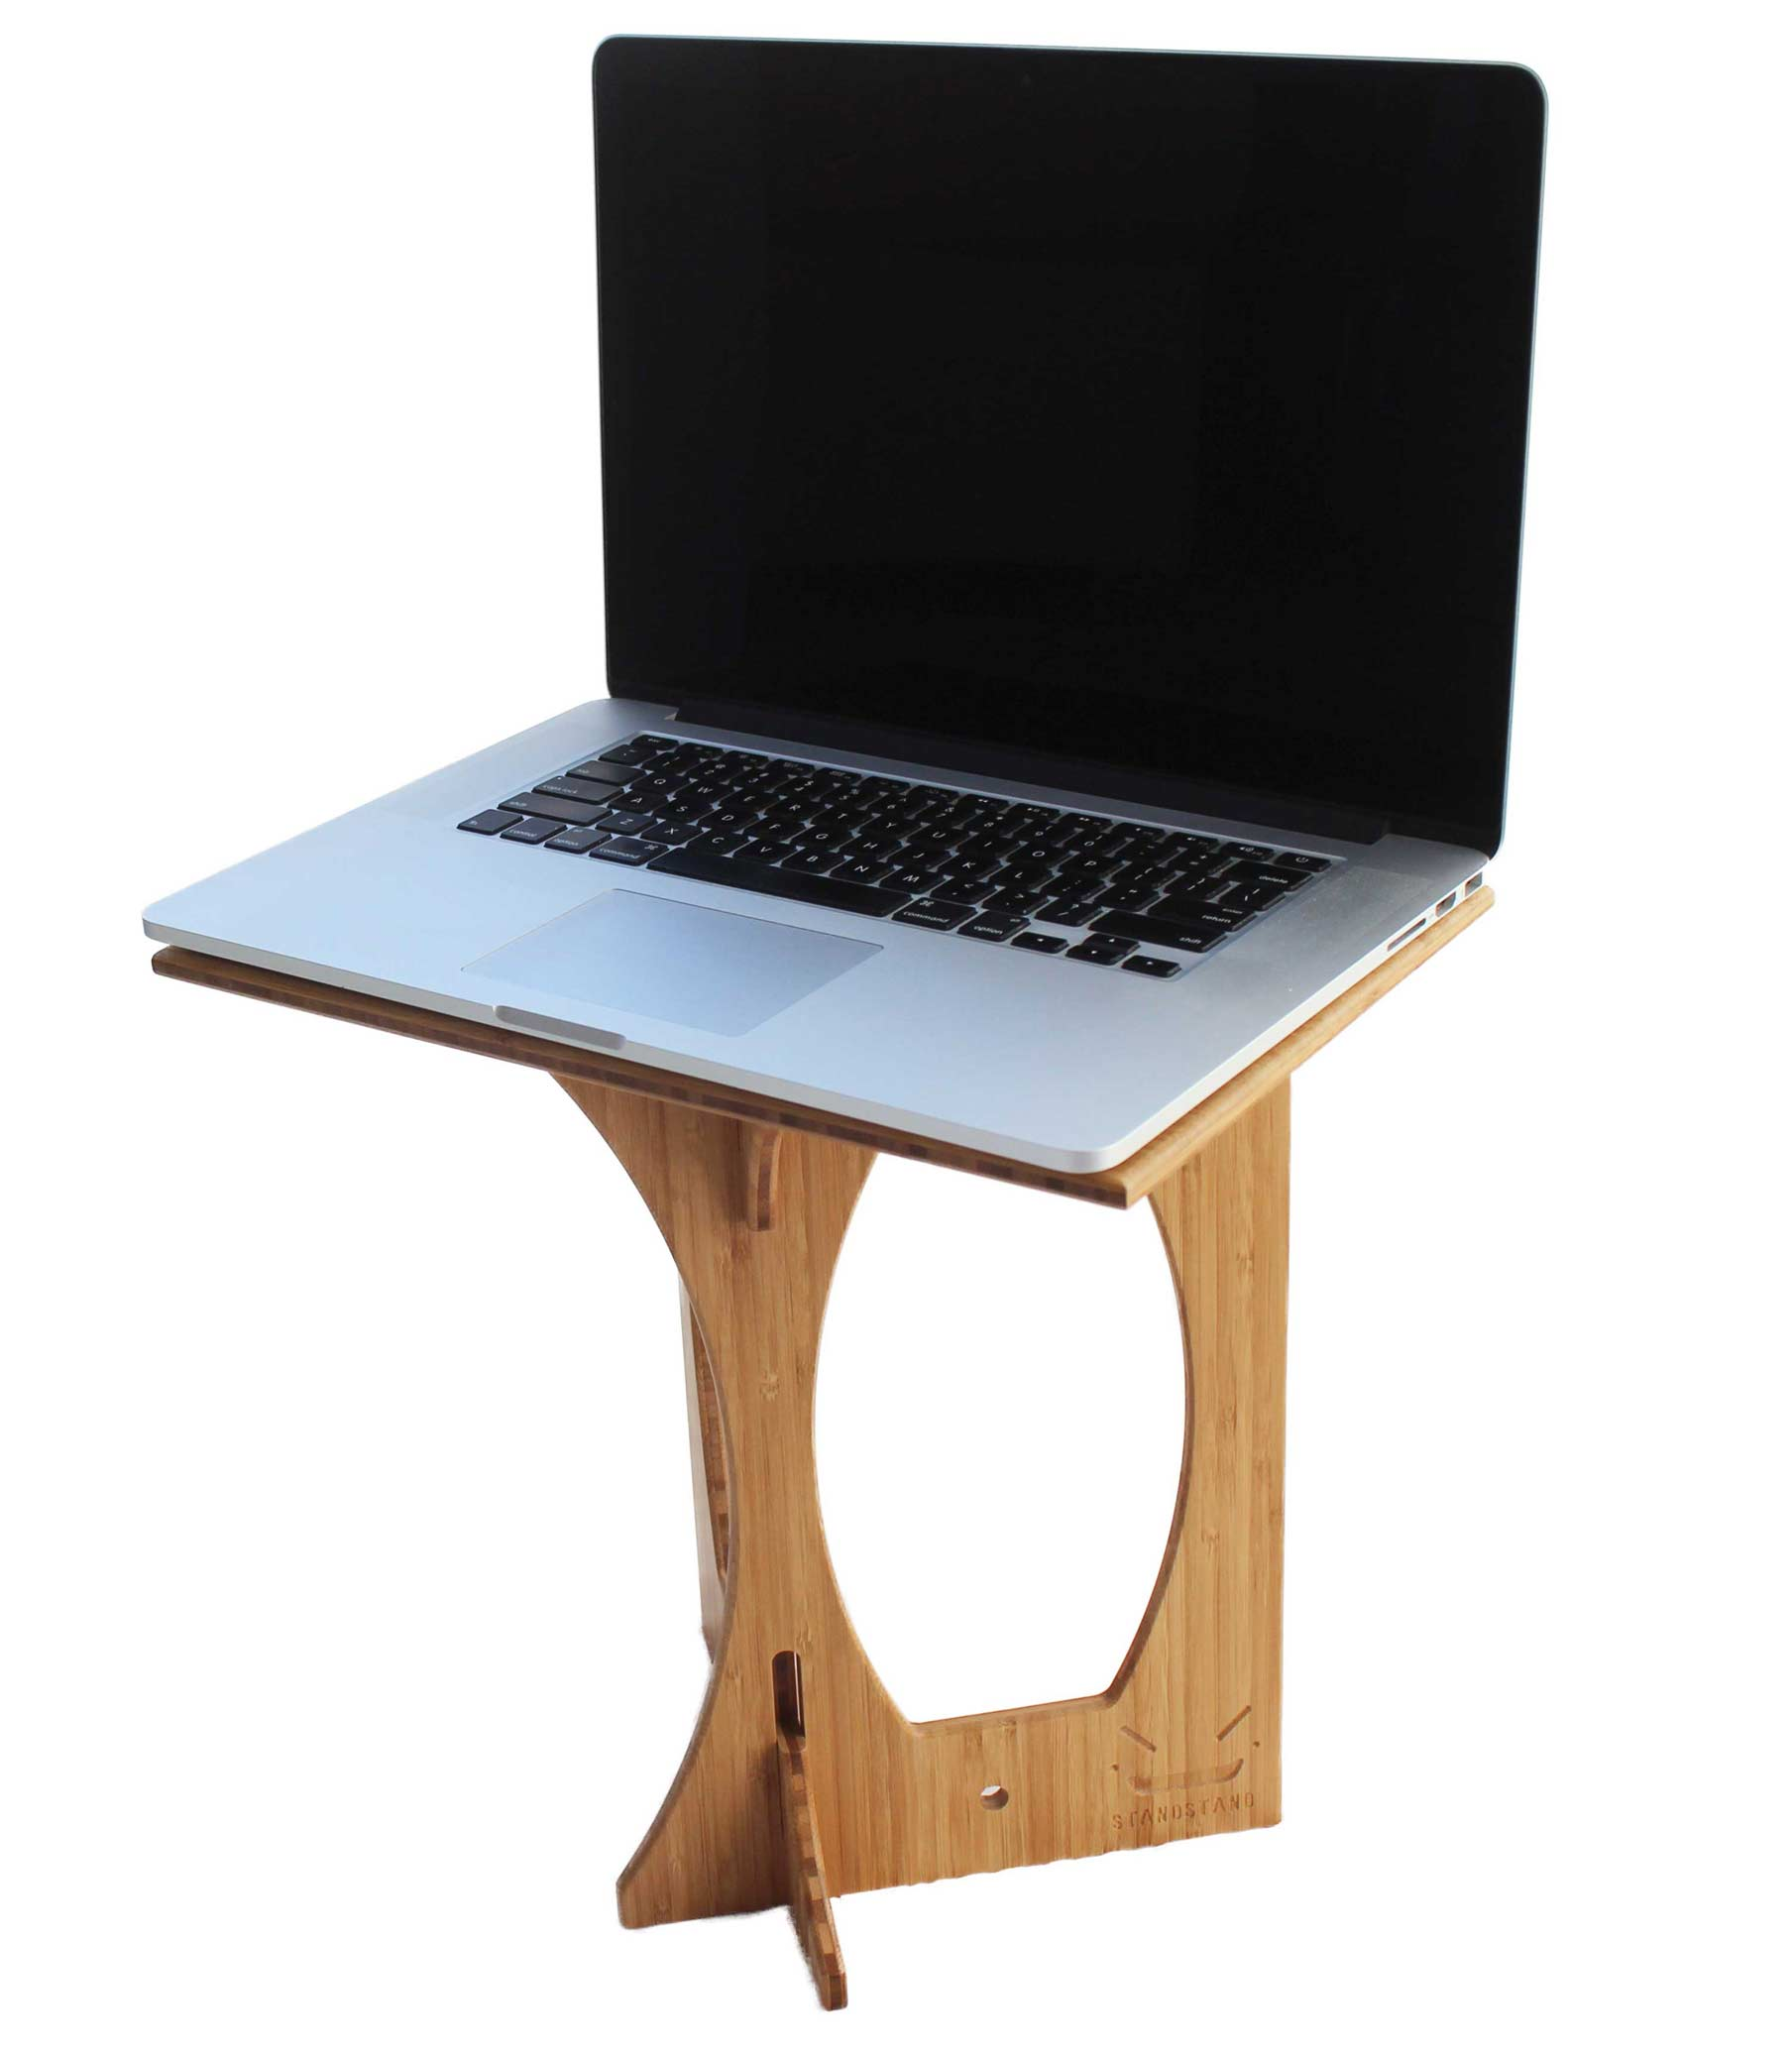 Laptop Chair Desk Standstand De Luxe In Bamboo Standstand Portable Standing Desk